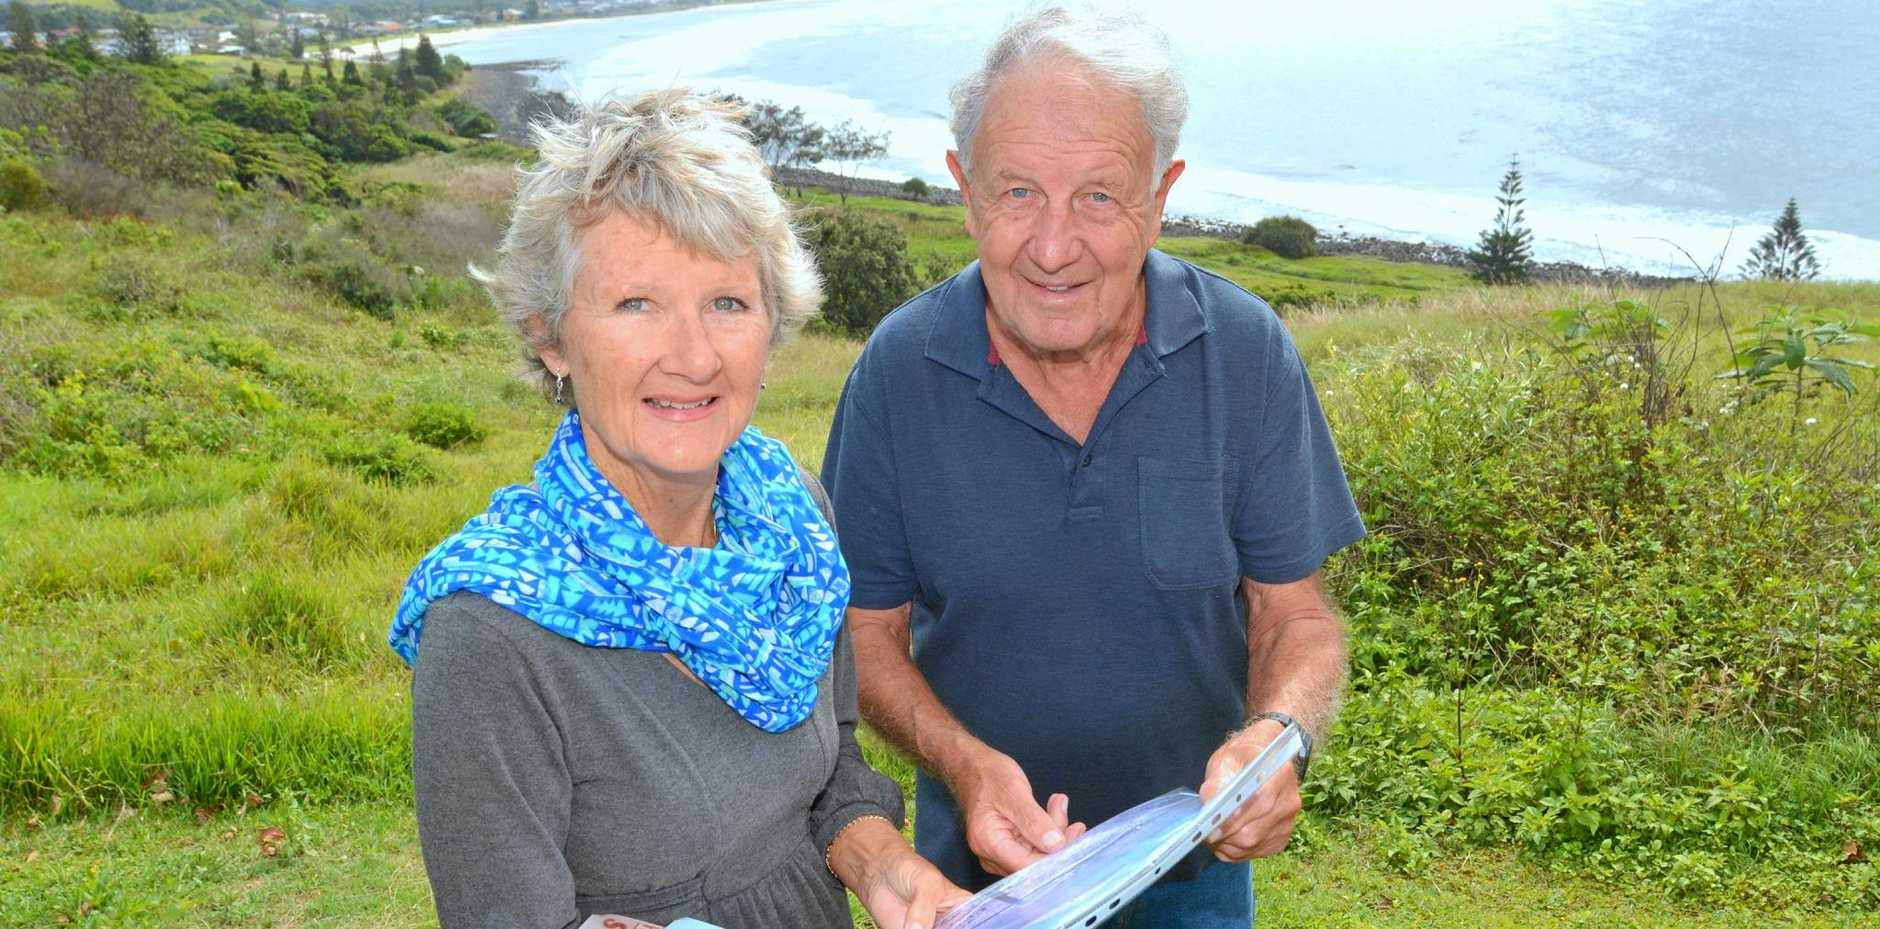 Lennox Head Heritage Committee convenor Robyn Hargrave and member Malcolm Milner record the changes in their seaside village.